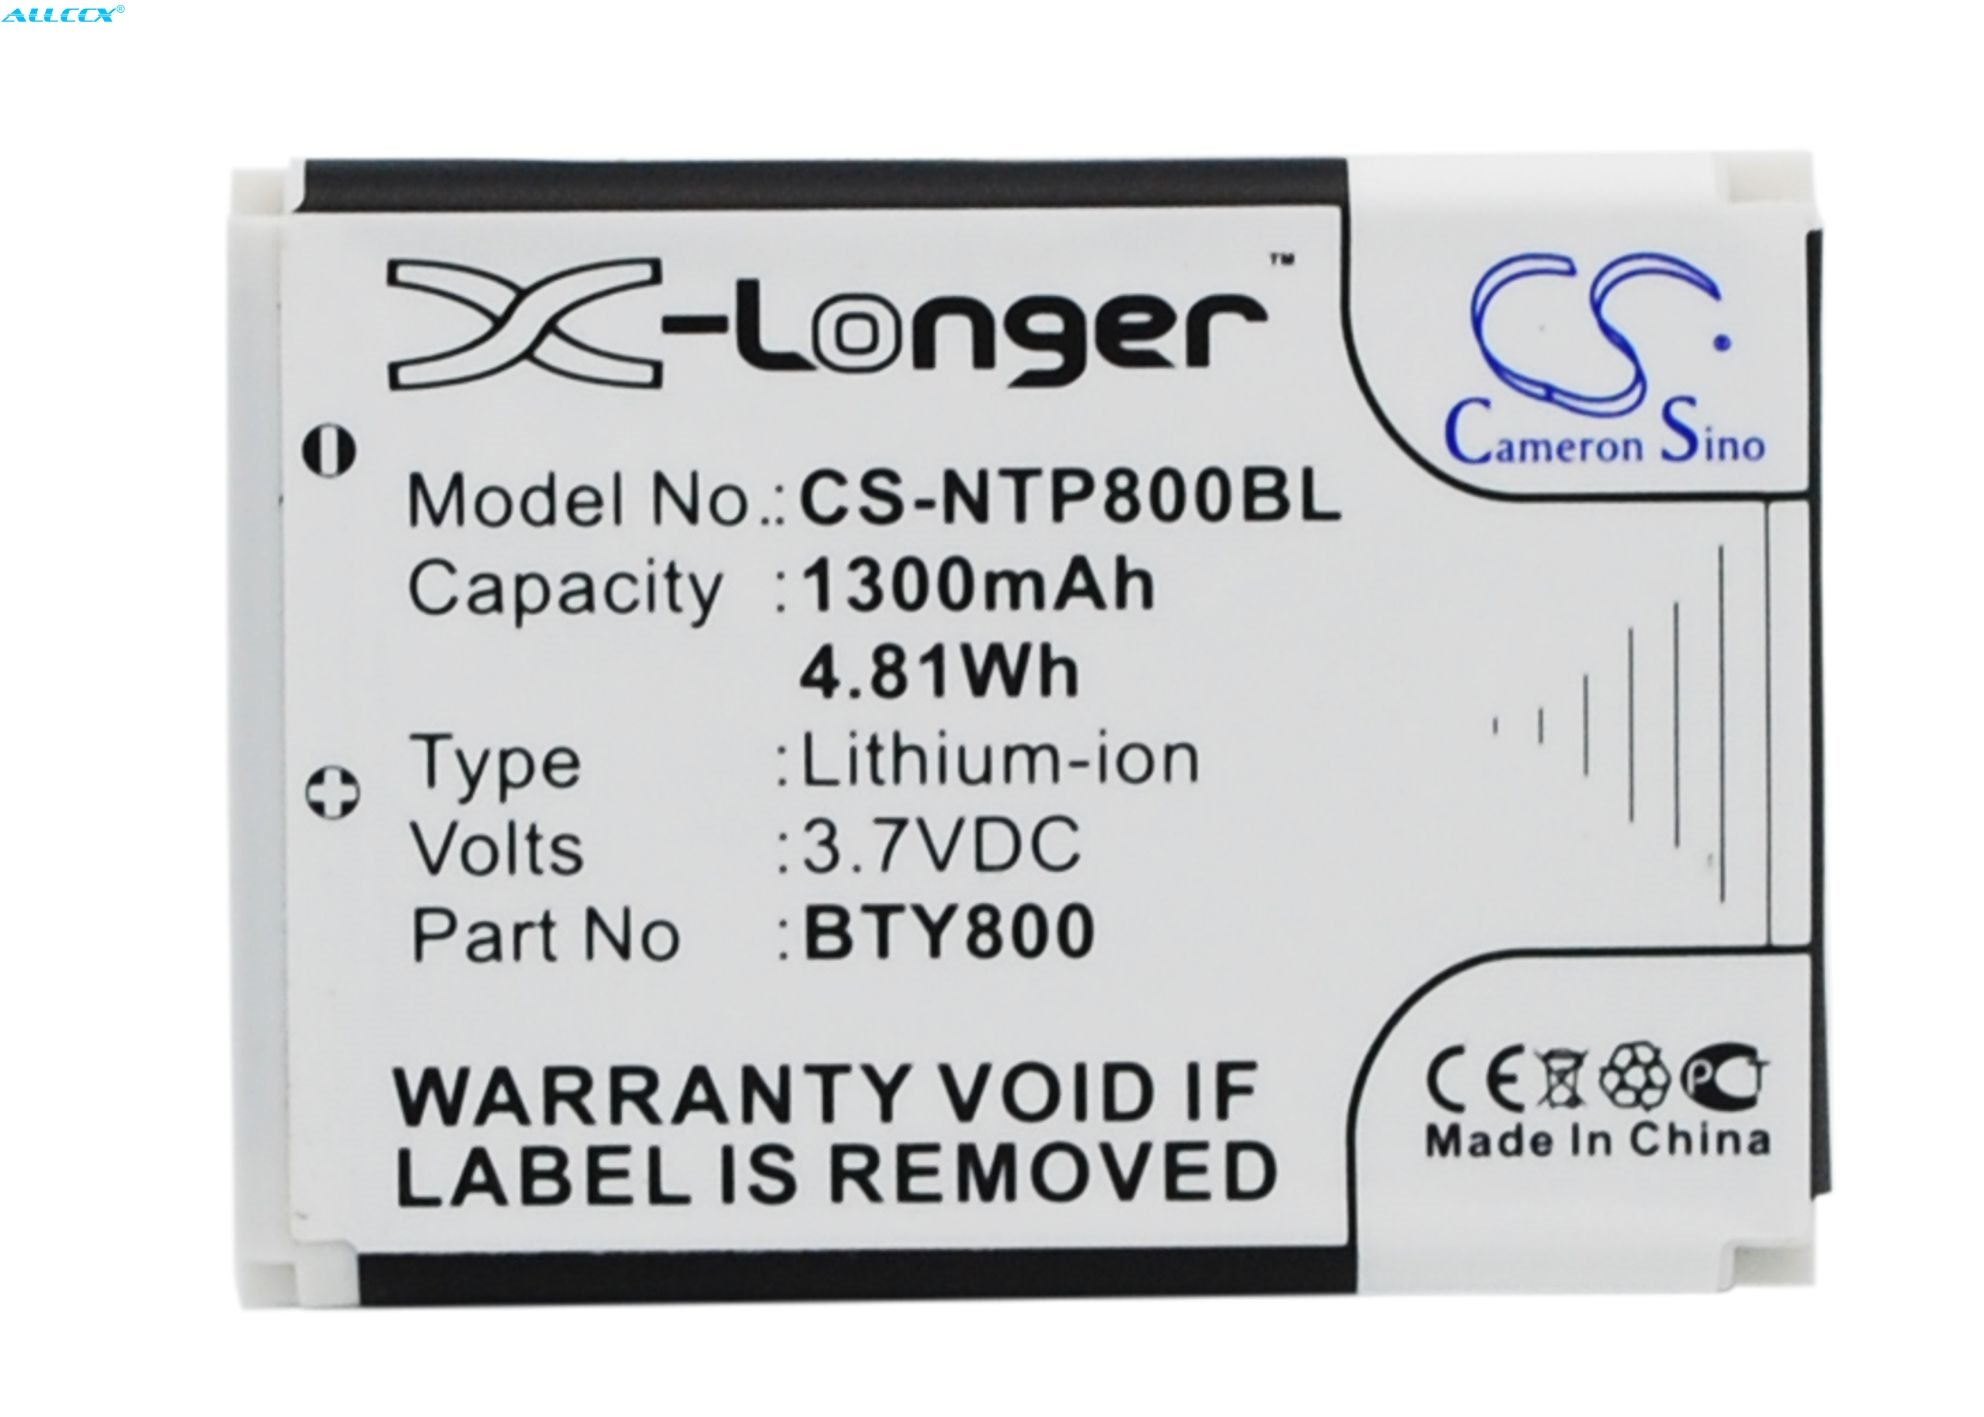 Cameron Sino 1300mAh Battery BTY800 for CipherLab 8000, 8200,8300,CPT-8300, For Newland NLS-PT800,NLS-PT850,NLS-PT850B,NLS-PT853(China)